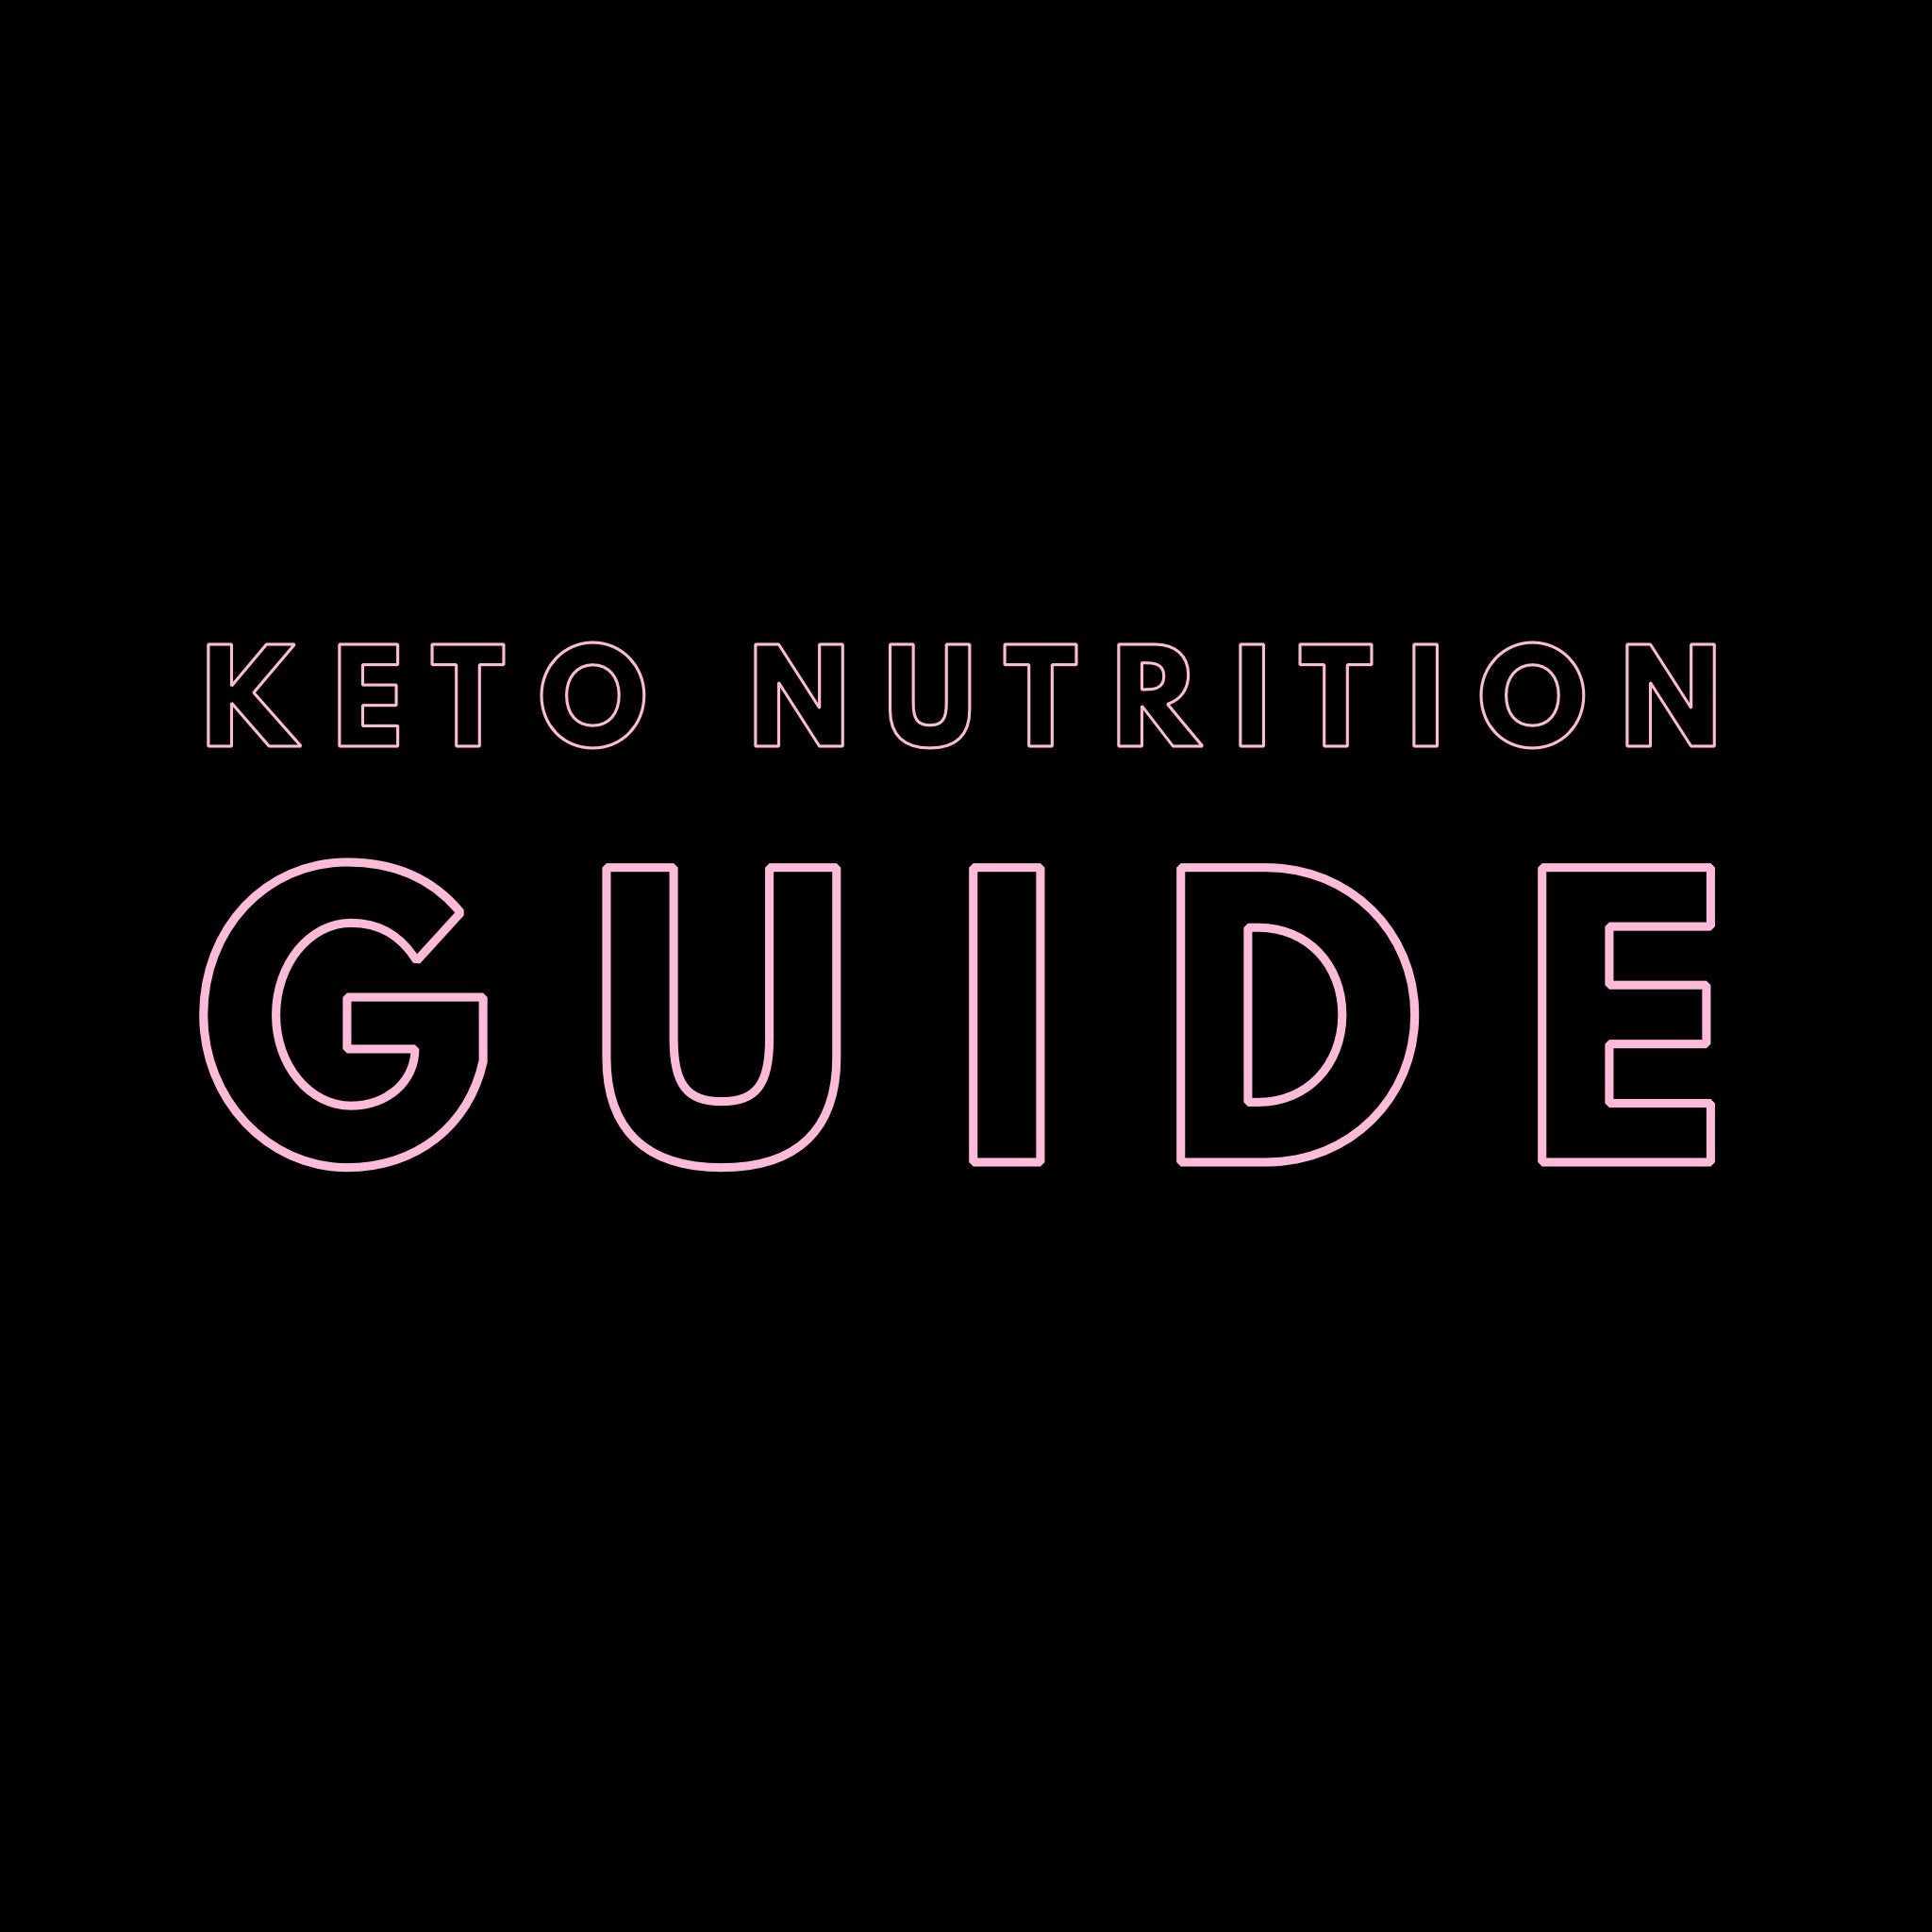 Keto Nutrition Guide